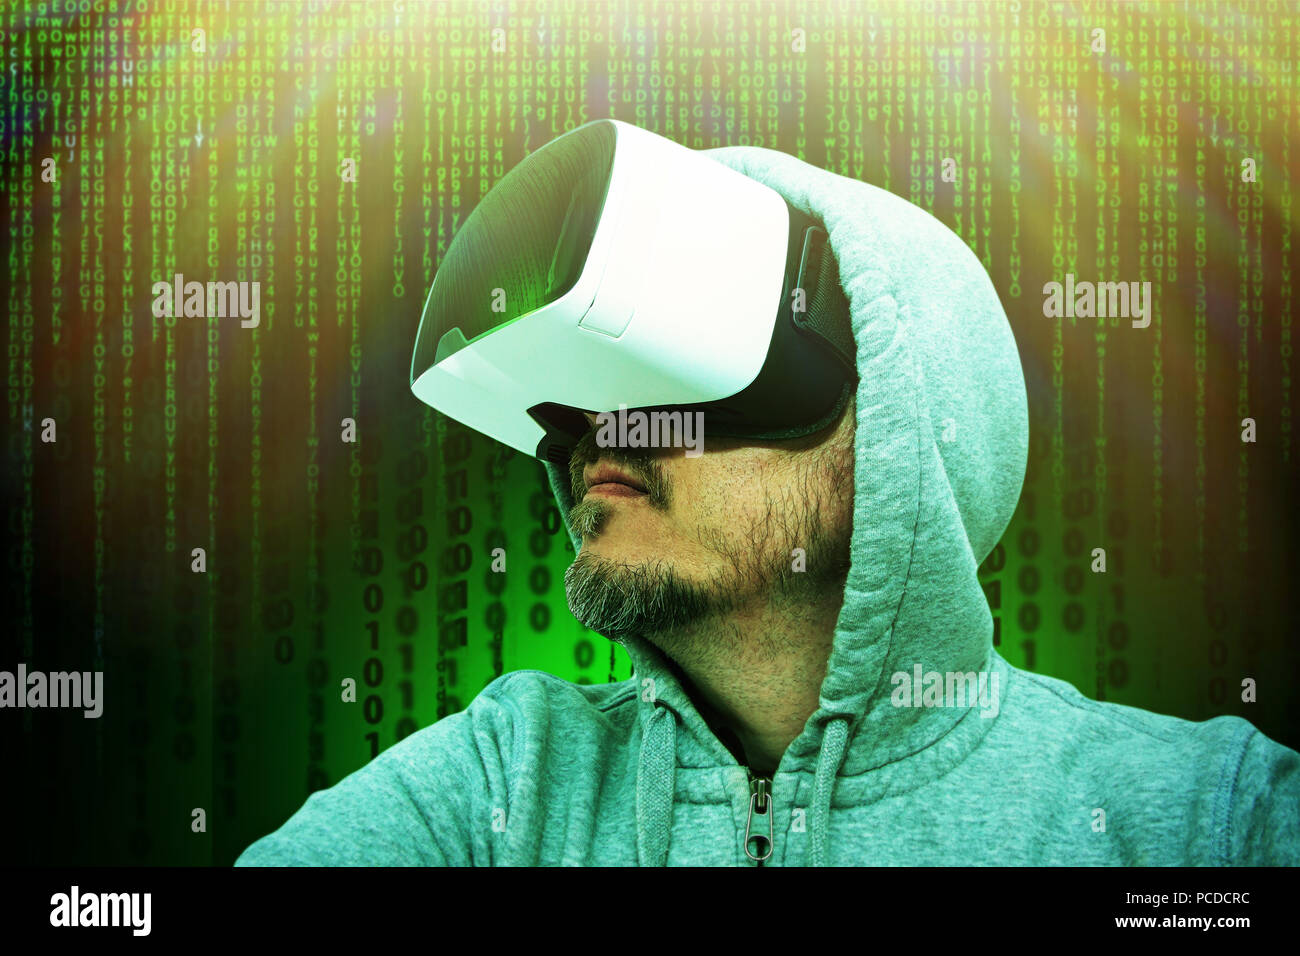 Man in cyberspace - Stock Image